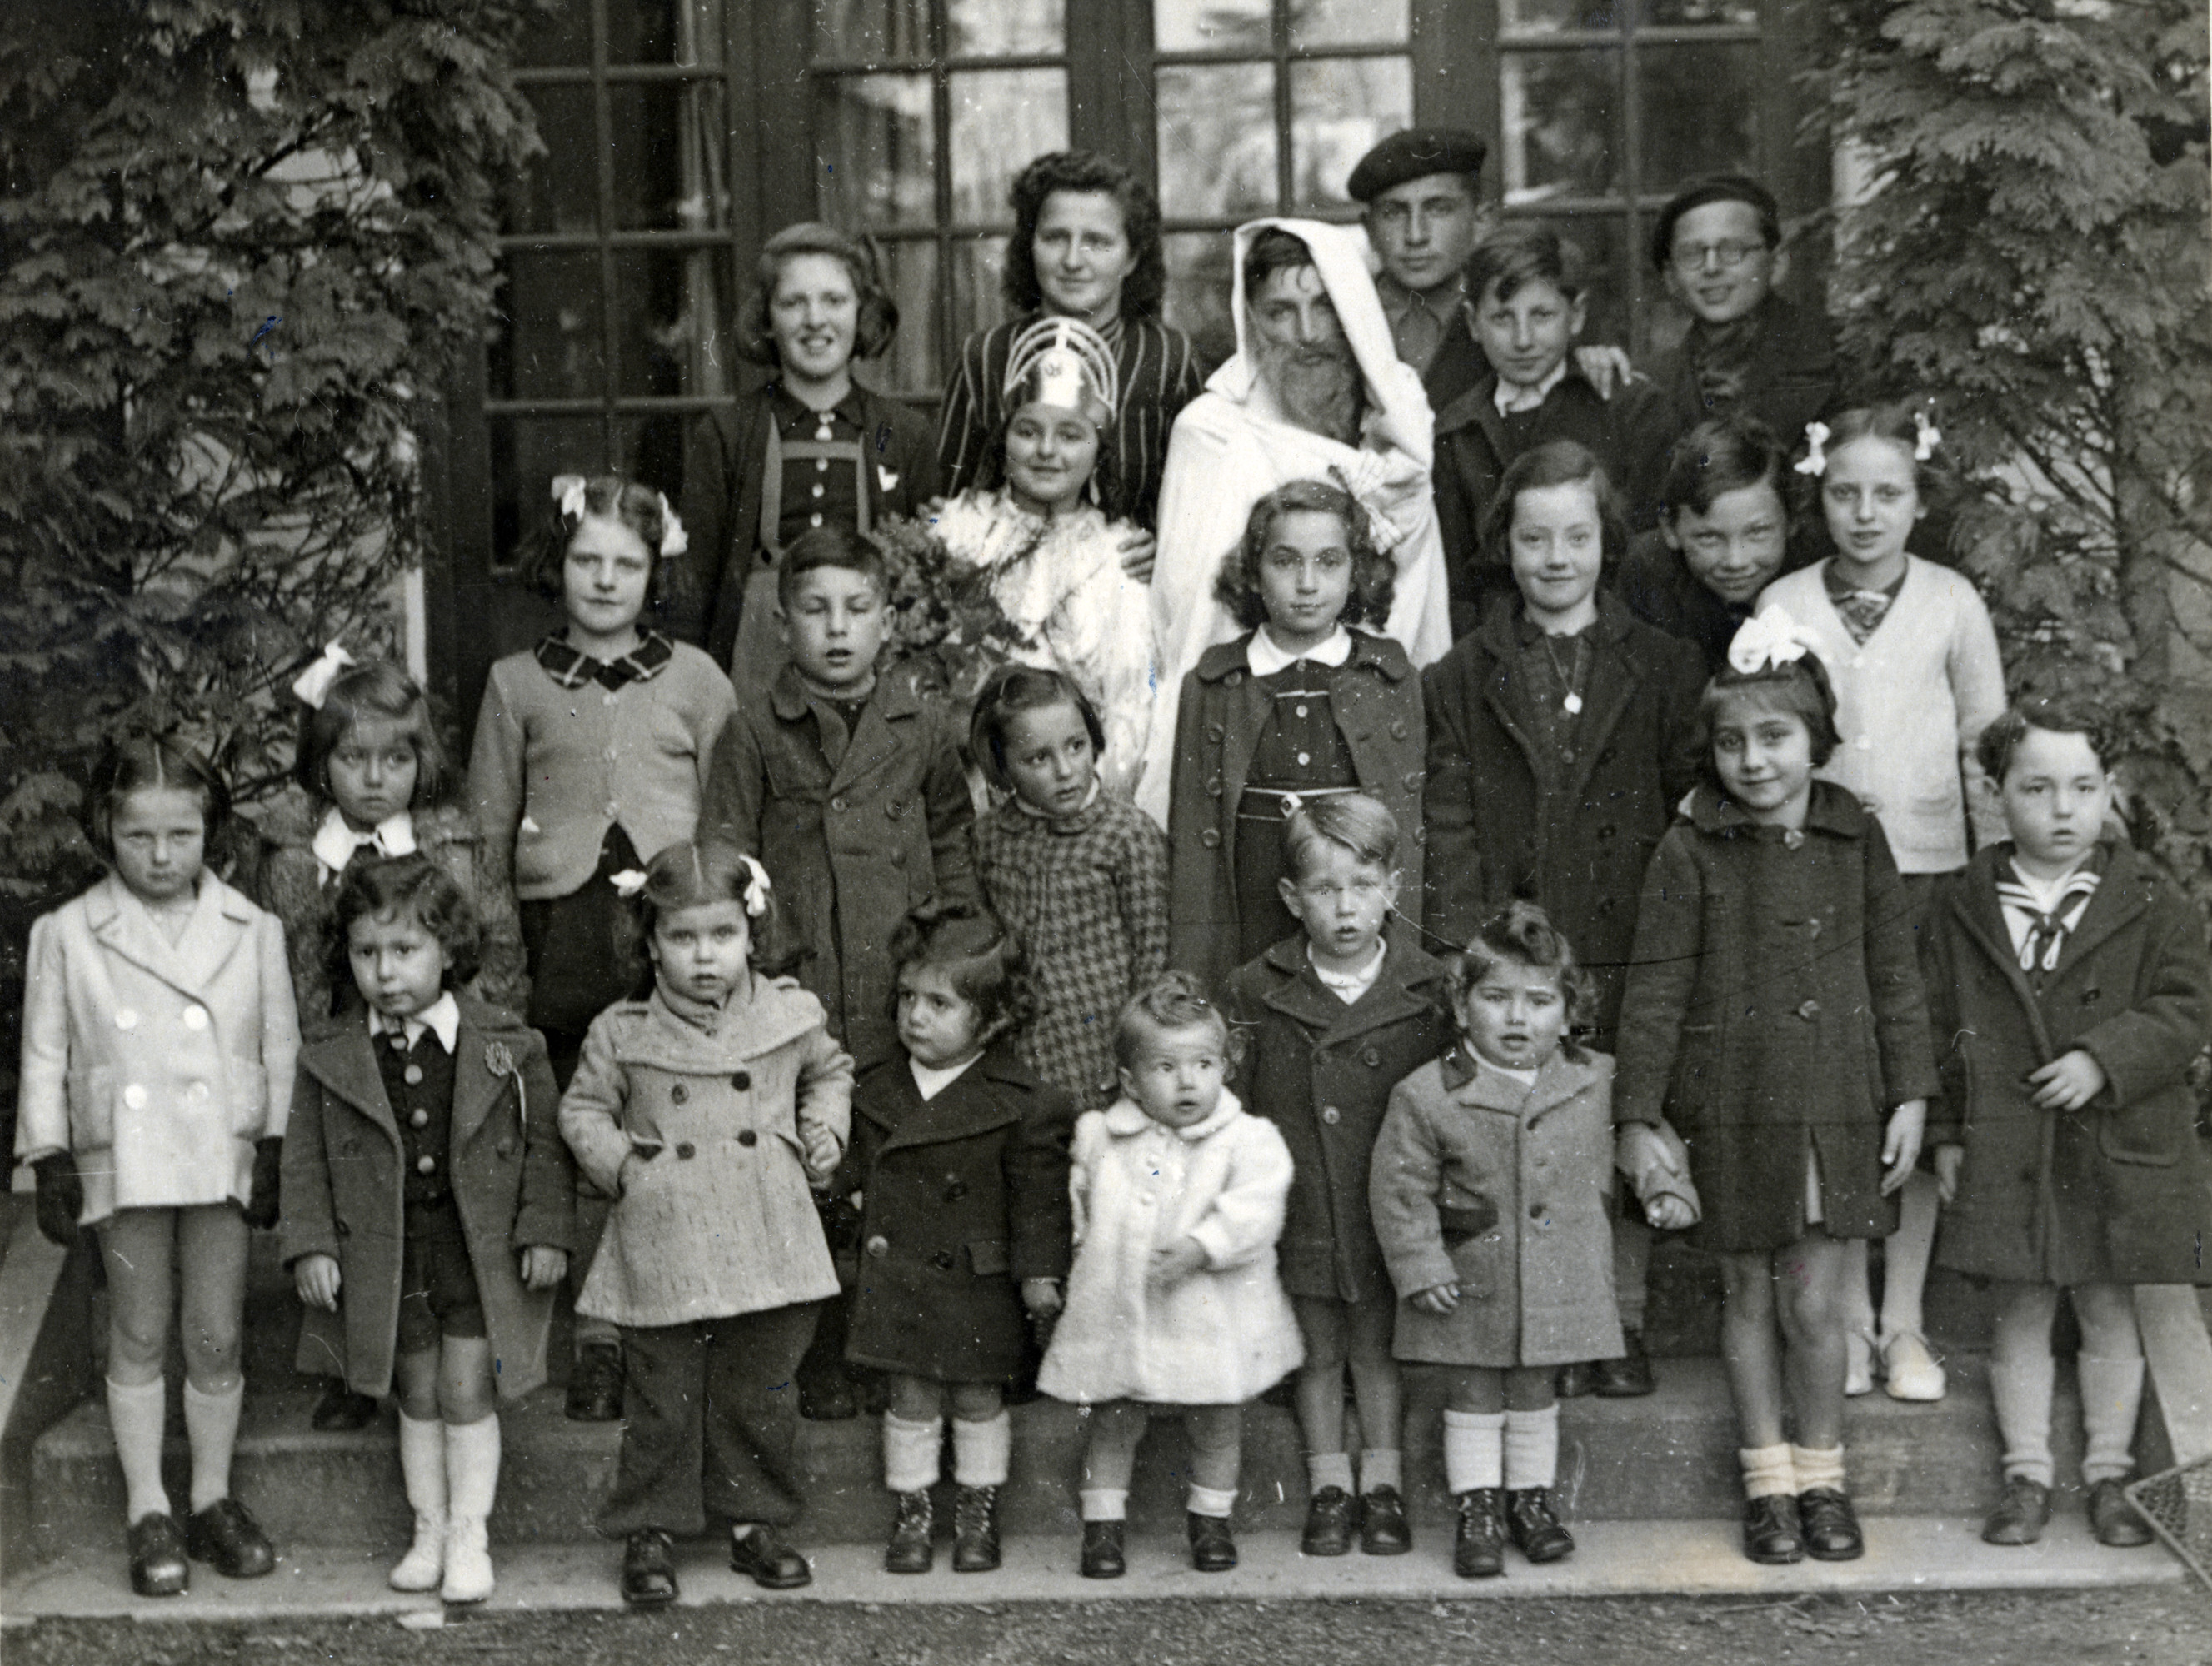 Jewish children celebrate Purim, probably shortly after the war.  Claire is in the second row from the back, on the far left, wearing a crown and dressed as Queen Esther.